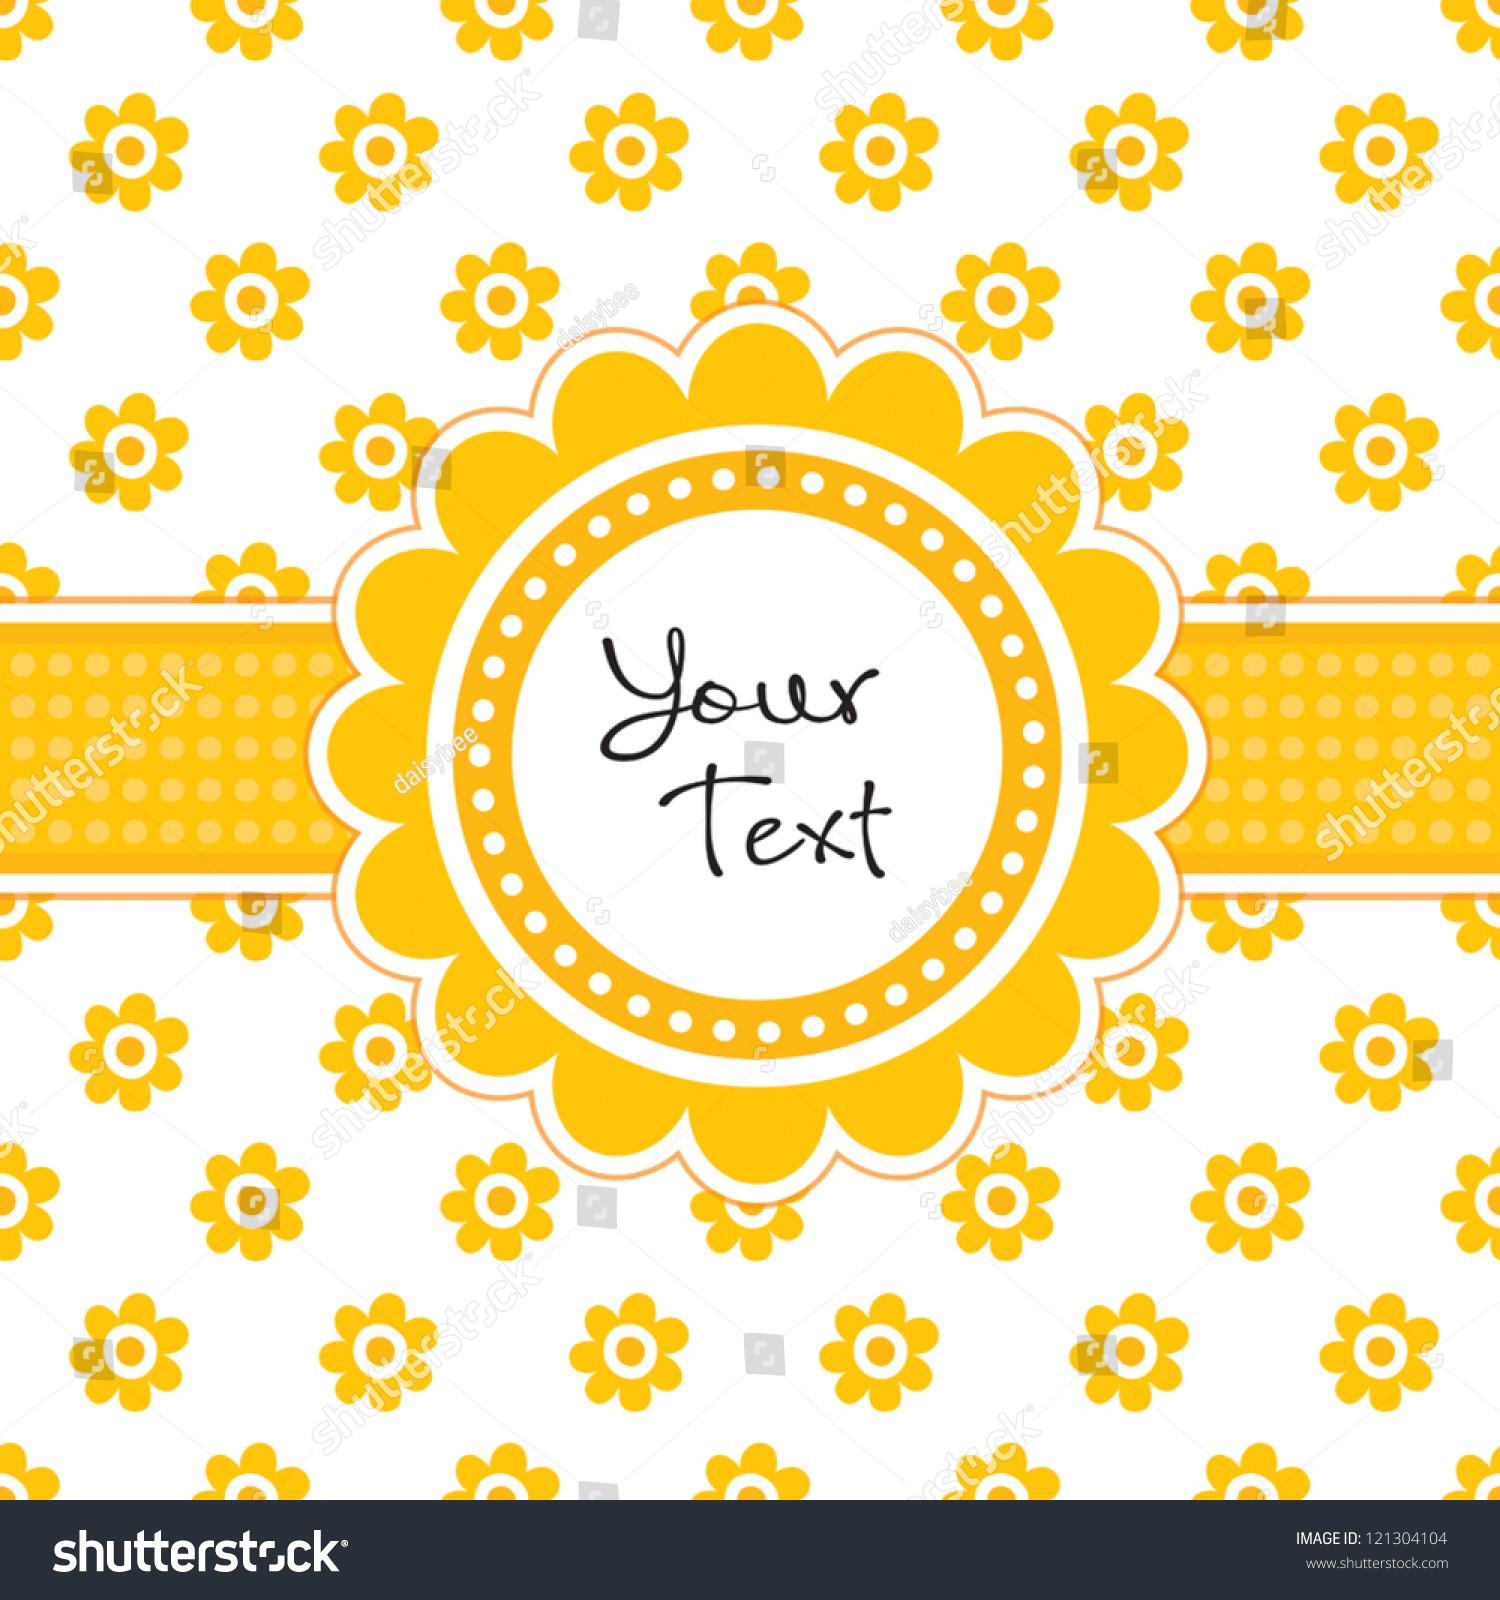 Vector Greeting Card Template With Cute Daisy Shaped Text Frame And Vintage Floral Print Great